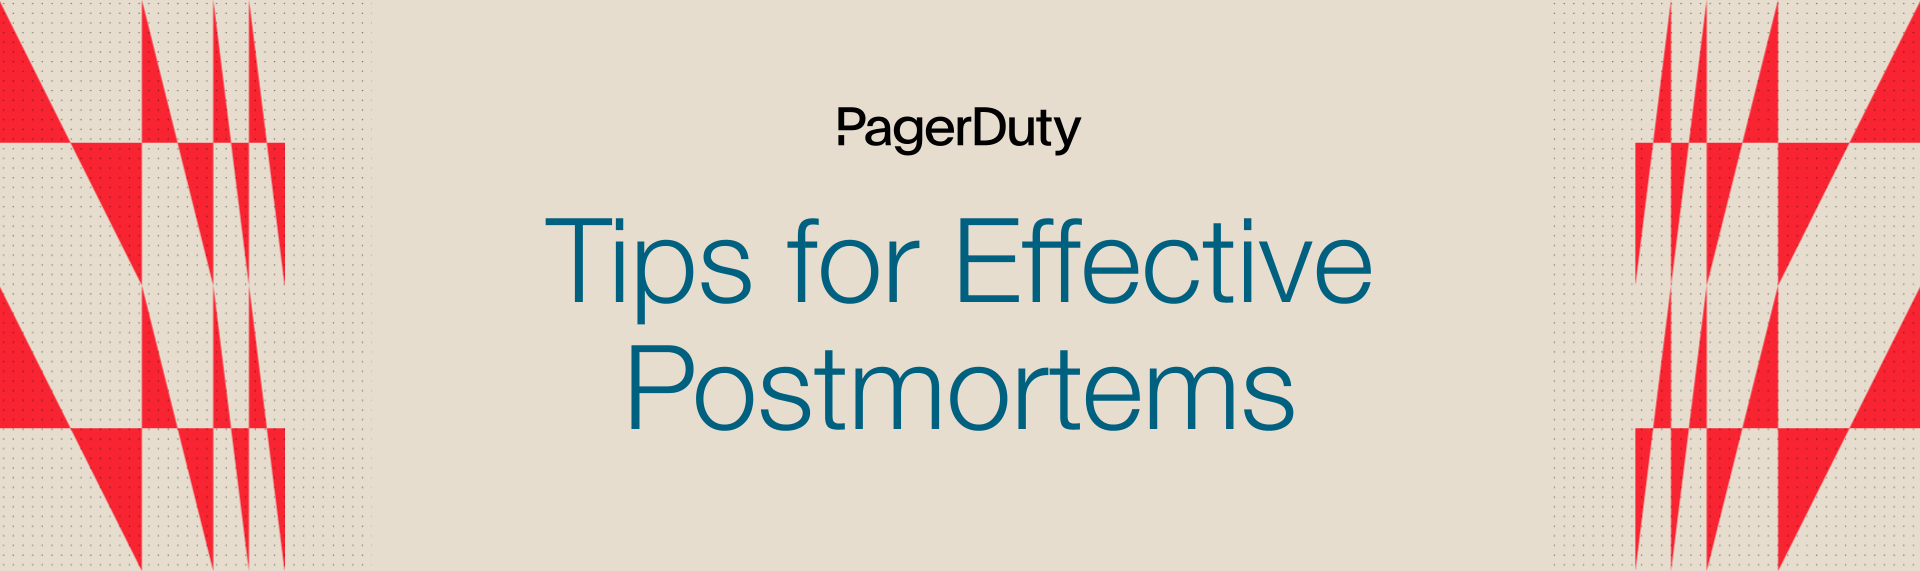 Effective Postmortems